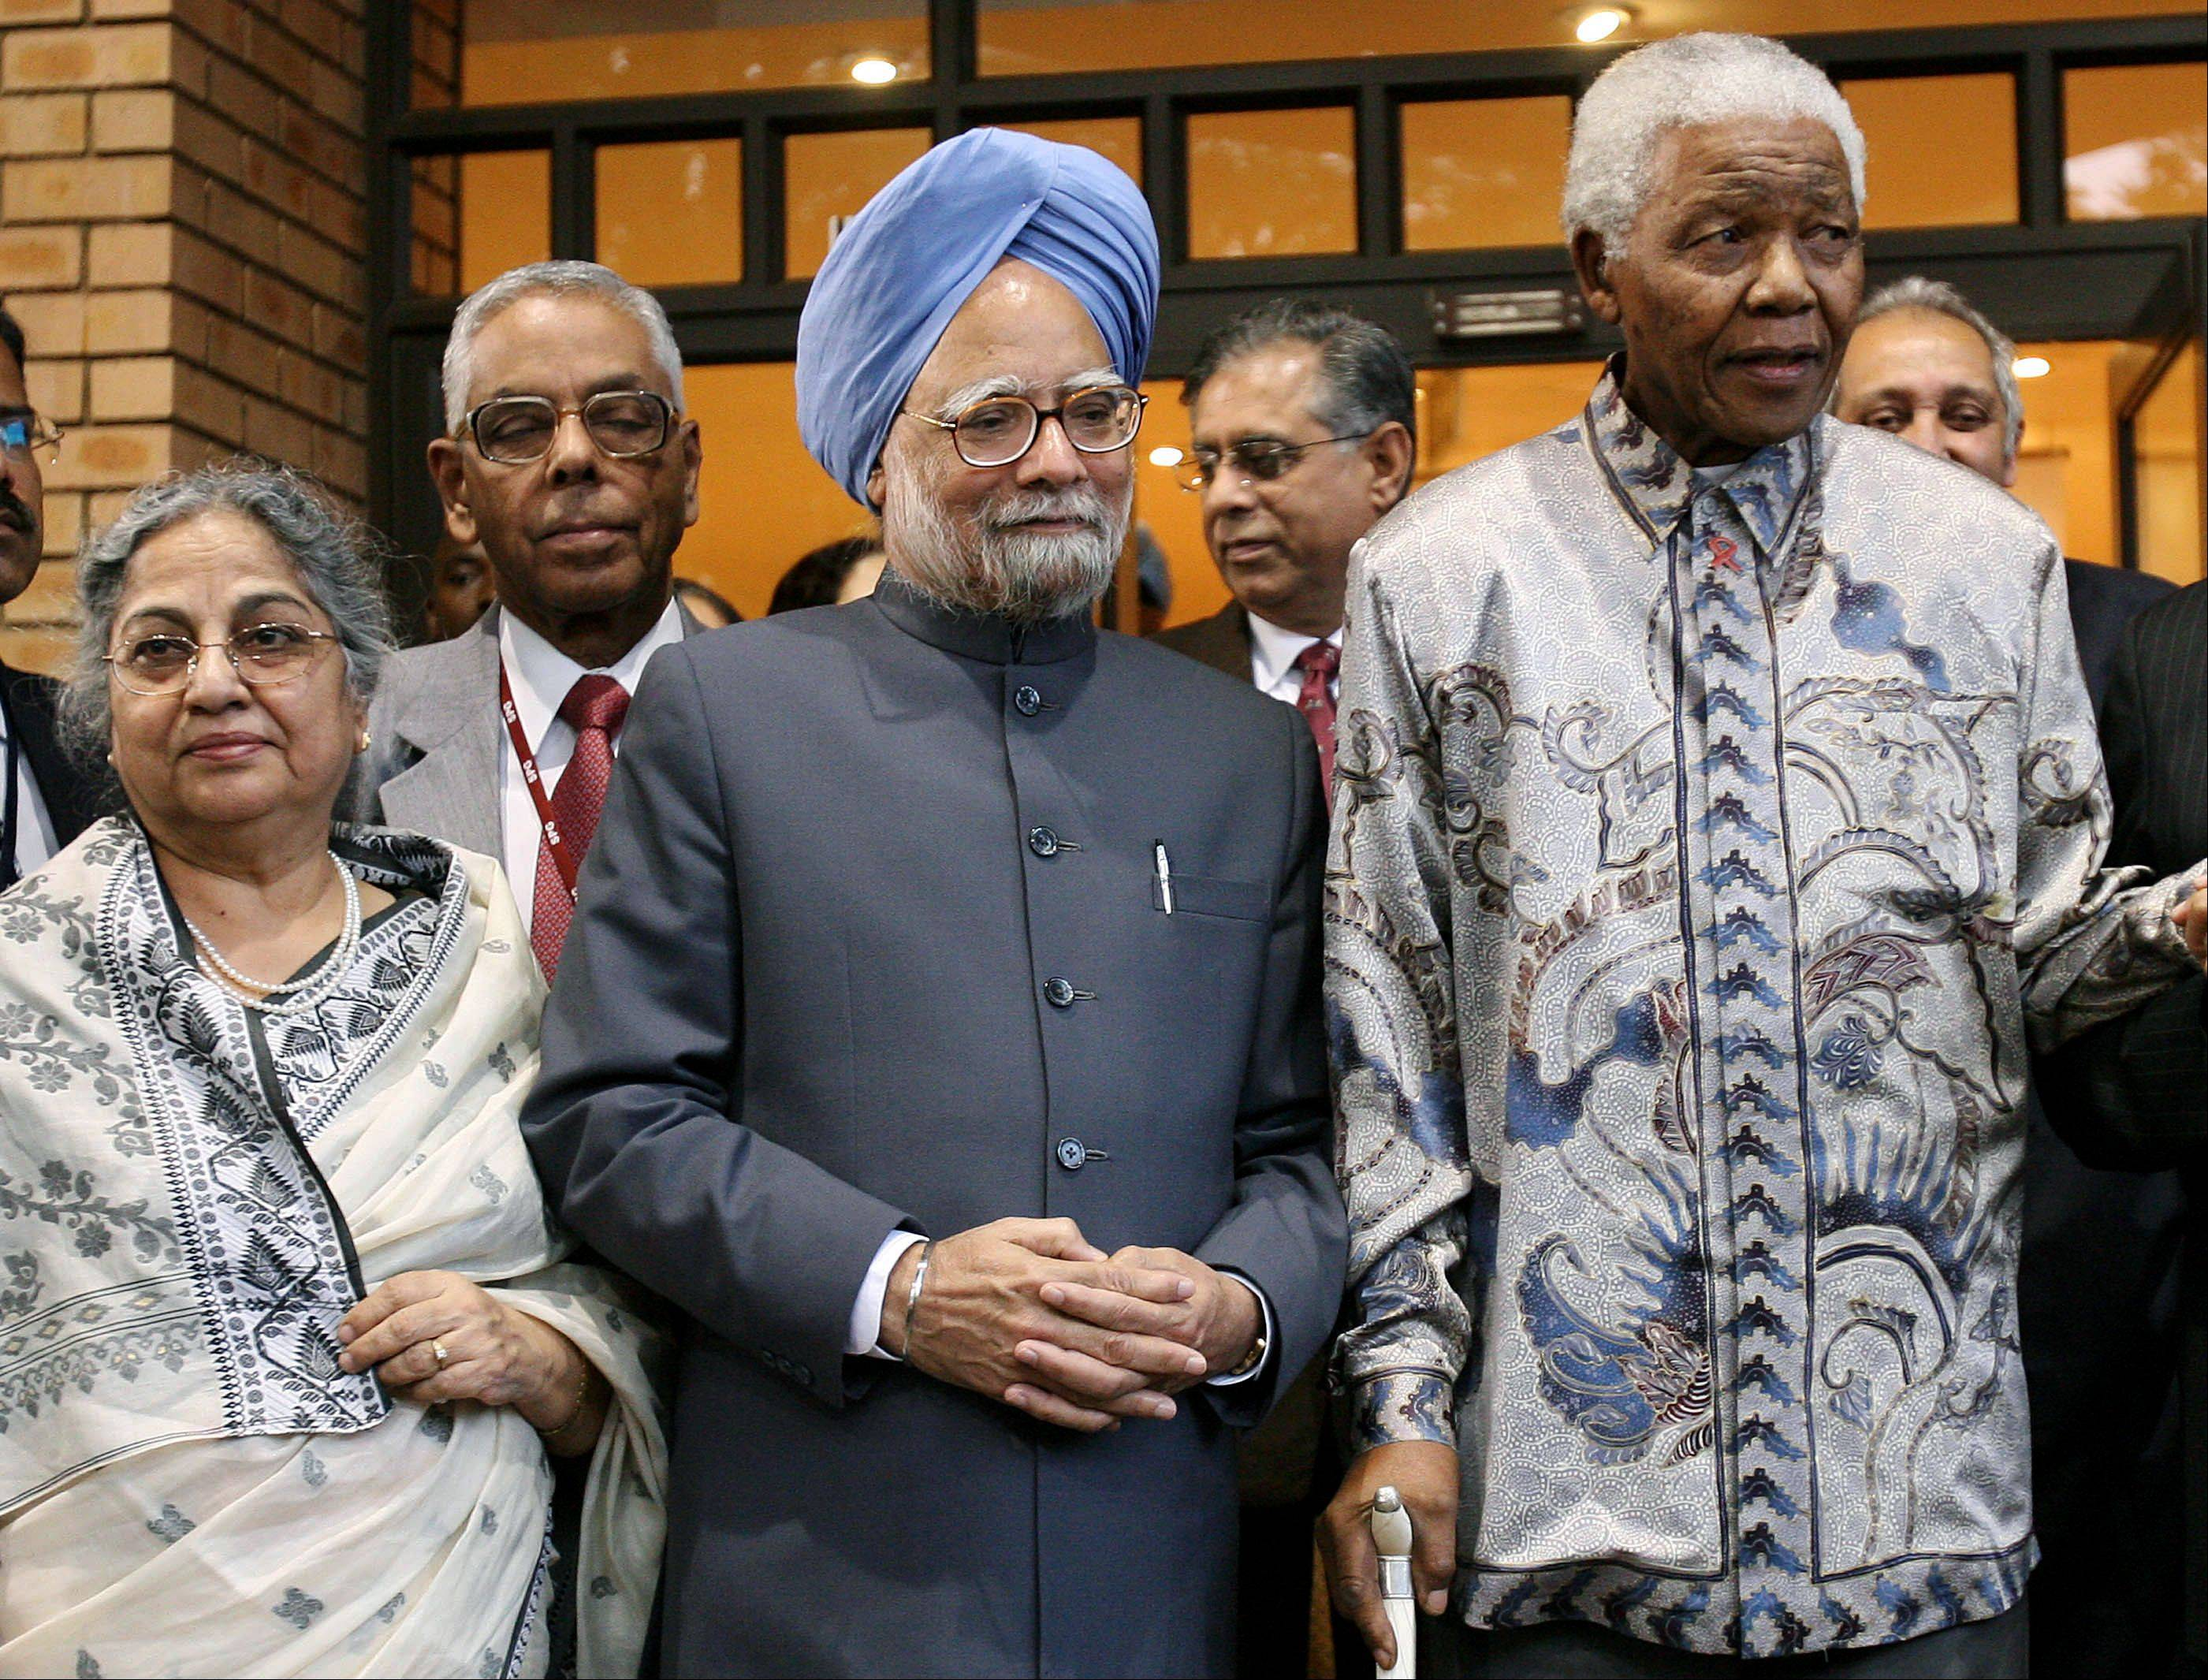 Indian Prime Minister Manmohan Singh, center, and his wife Kaur, left, pose for photographers with former South African president Nelson Mandela after their meeting at the Mandela foundation in Johannesburg Monday Oct. 2, 2006.